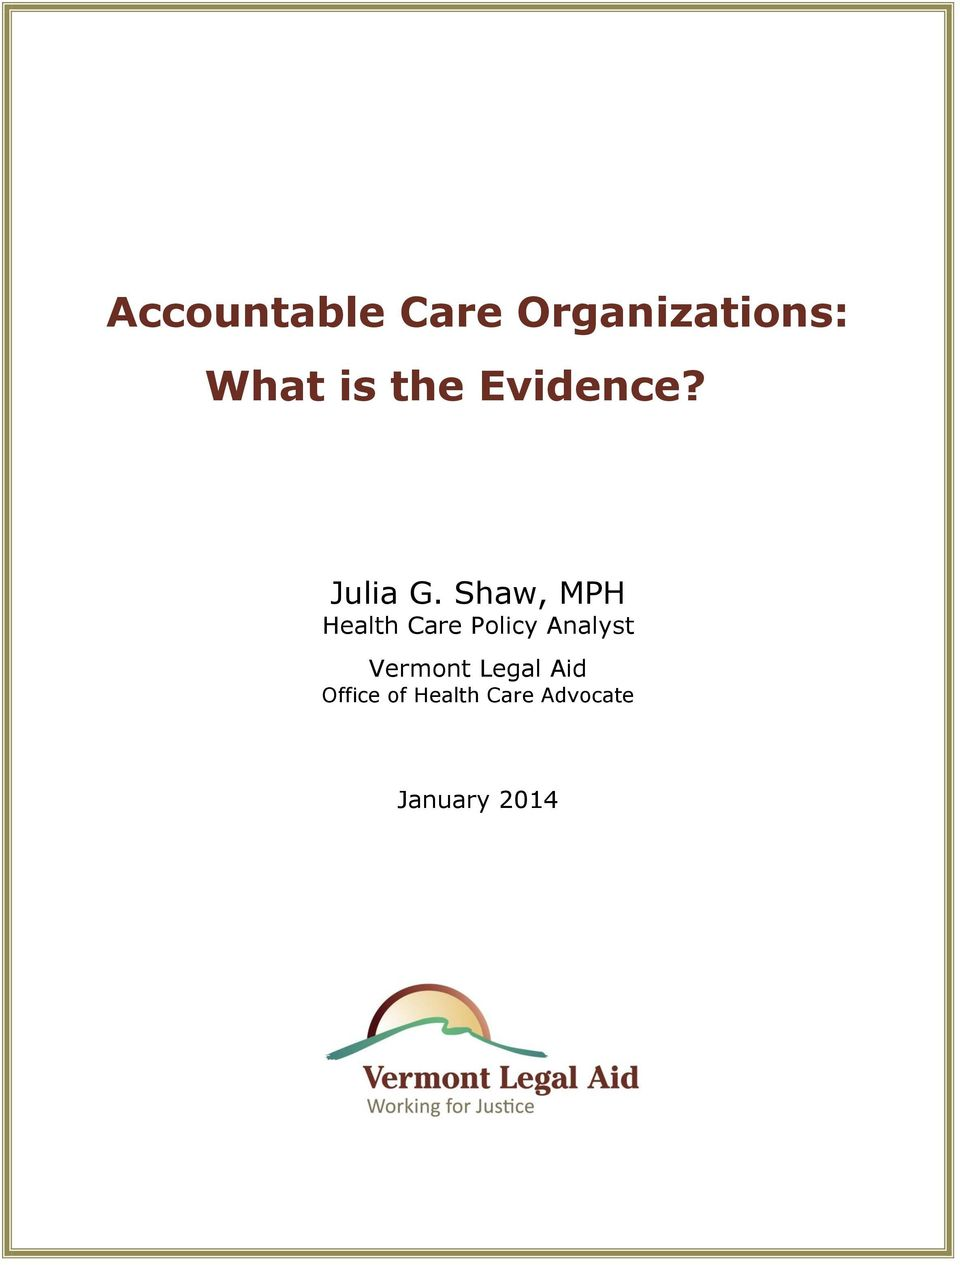 Shaw, MPH Health Care Policy Analyst